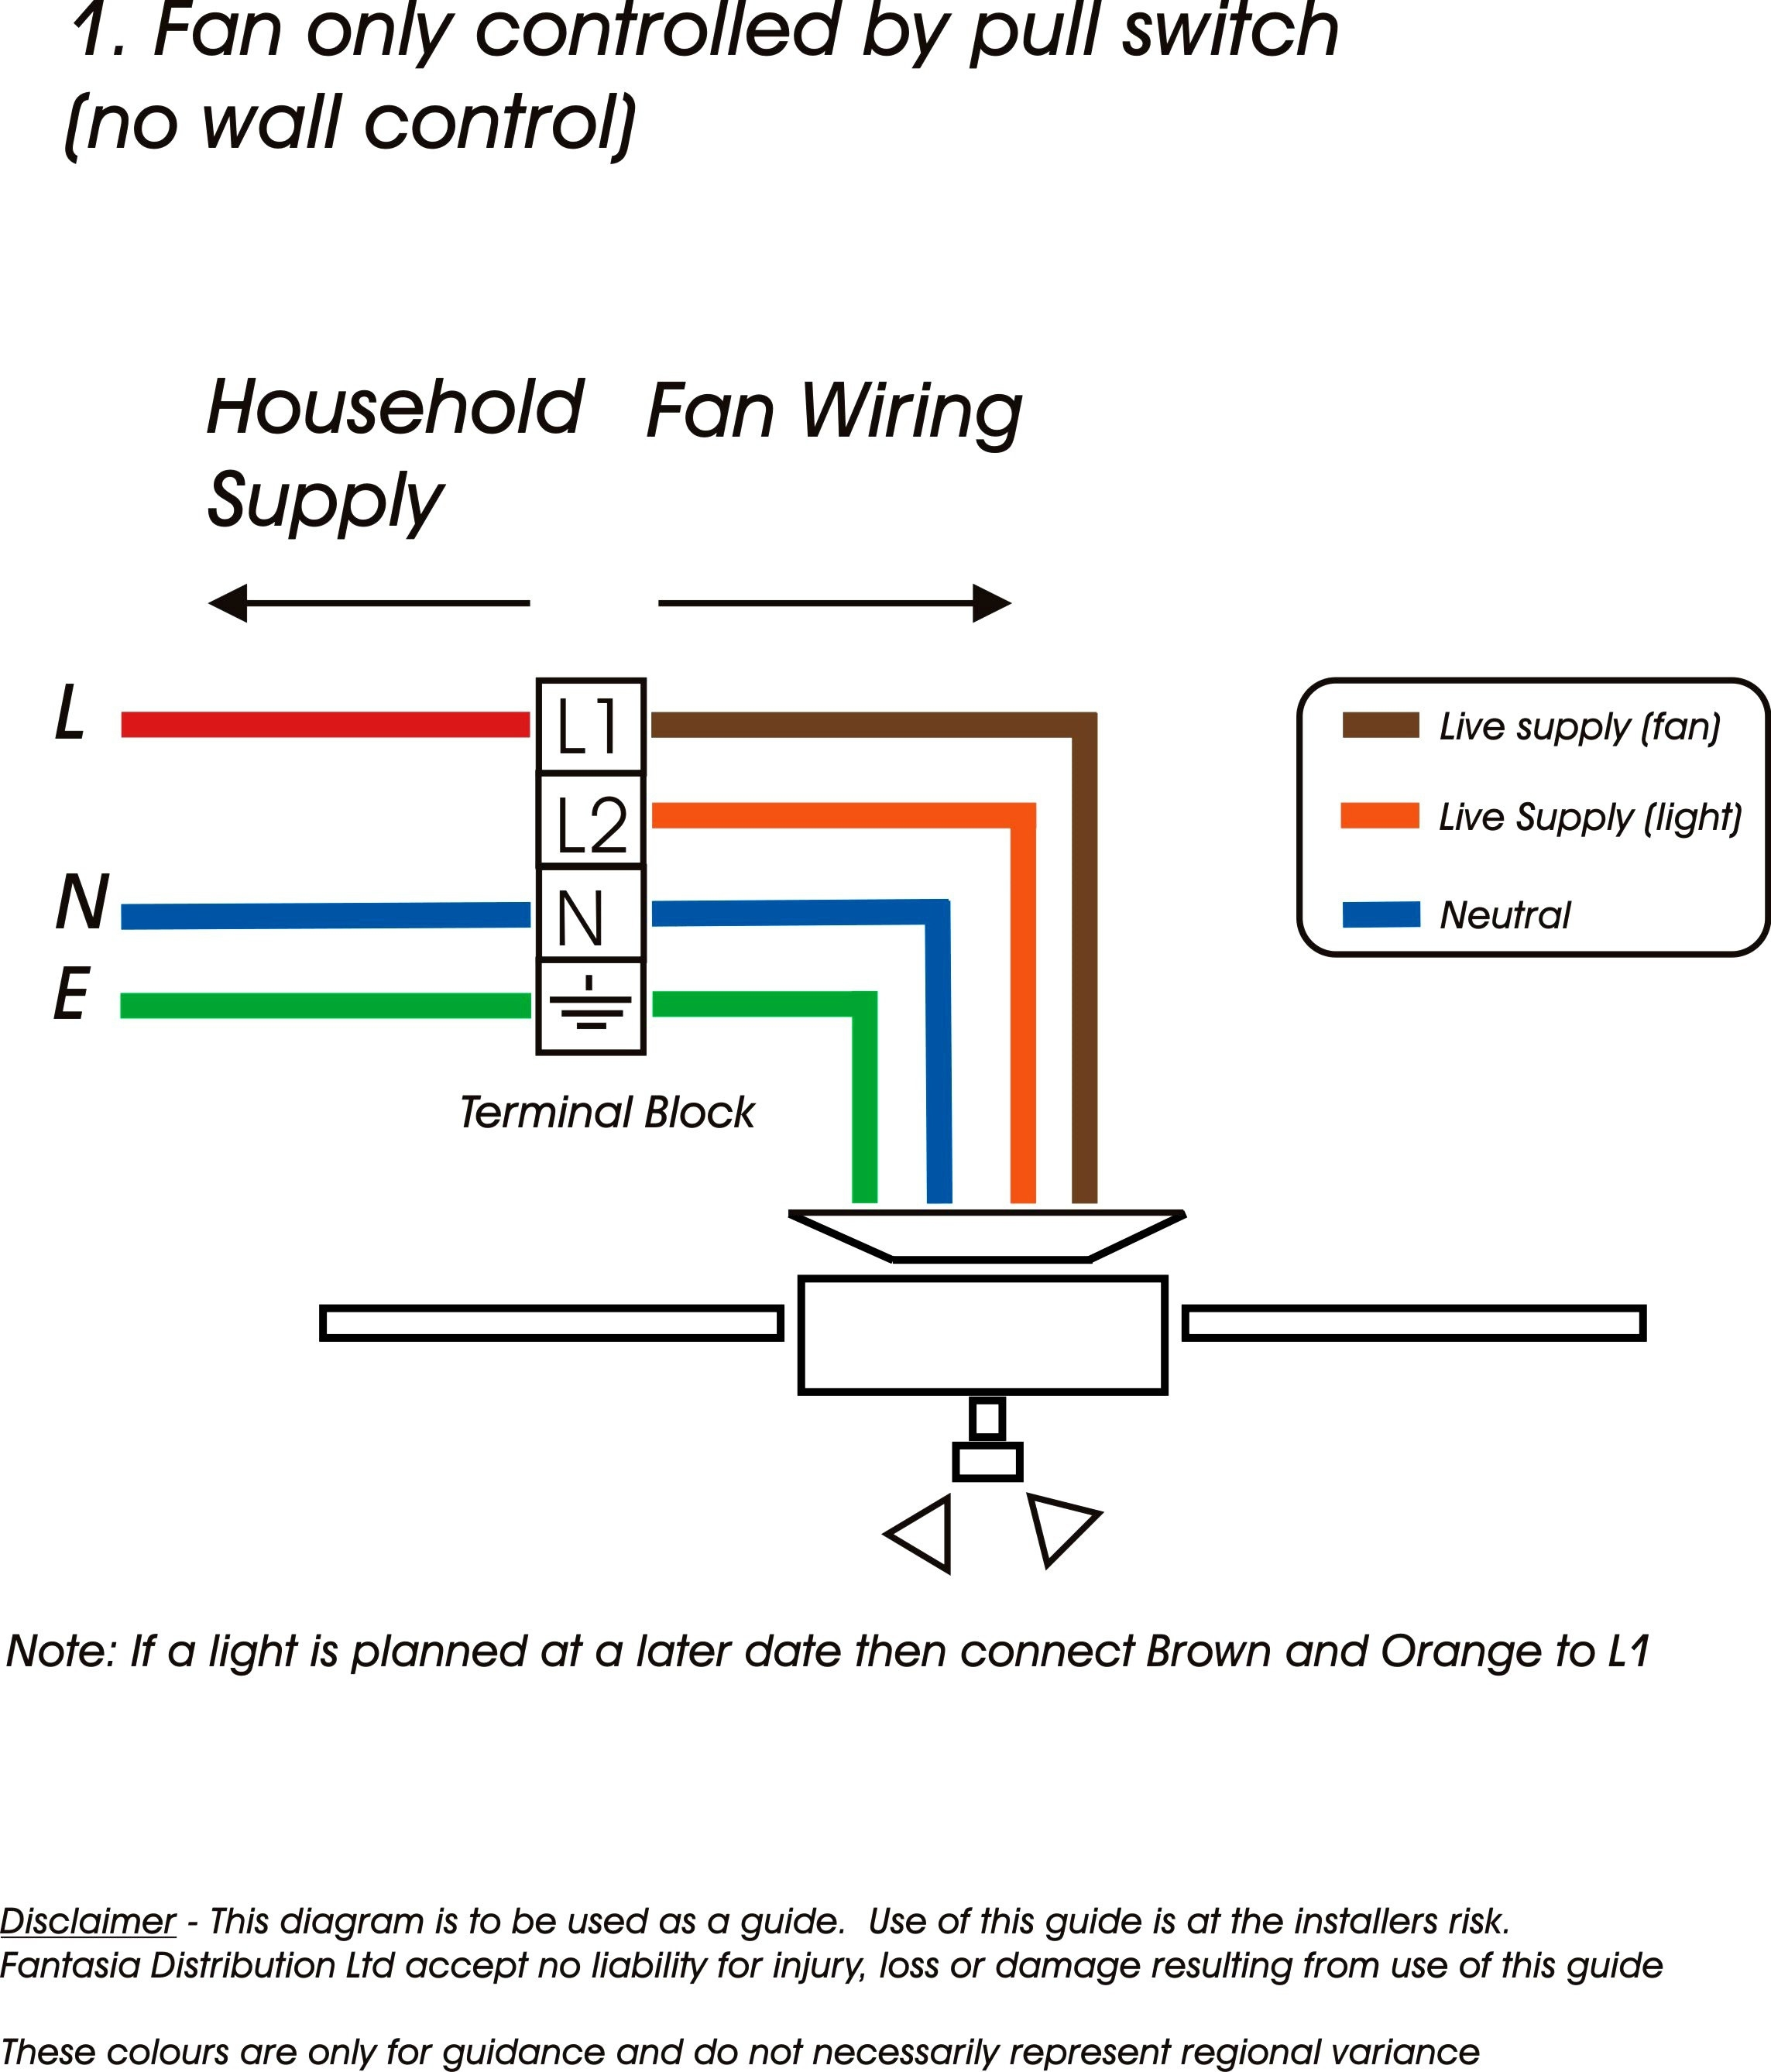 ceiling fan 3 speed wall switch wiring diagram Collection-Ceiling Fan 3 Speed Wall Switch Wiring Diagram Ceiling Fan Pull Switch Chain 3 Speed 20-e